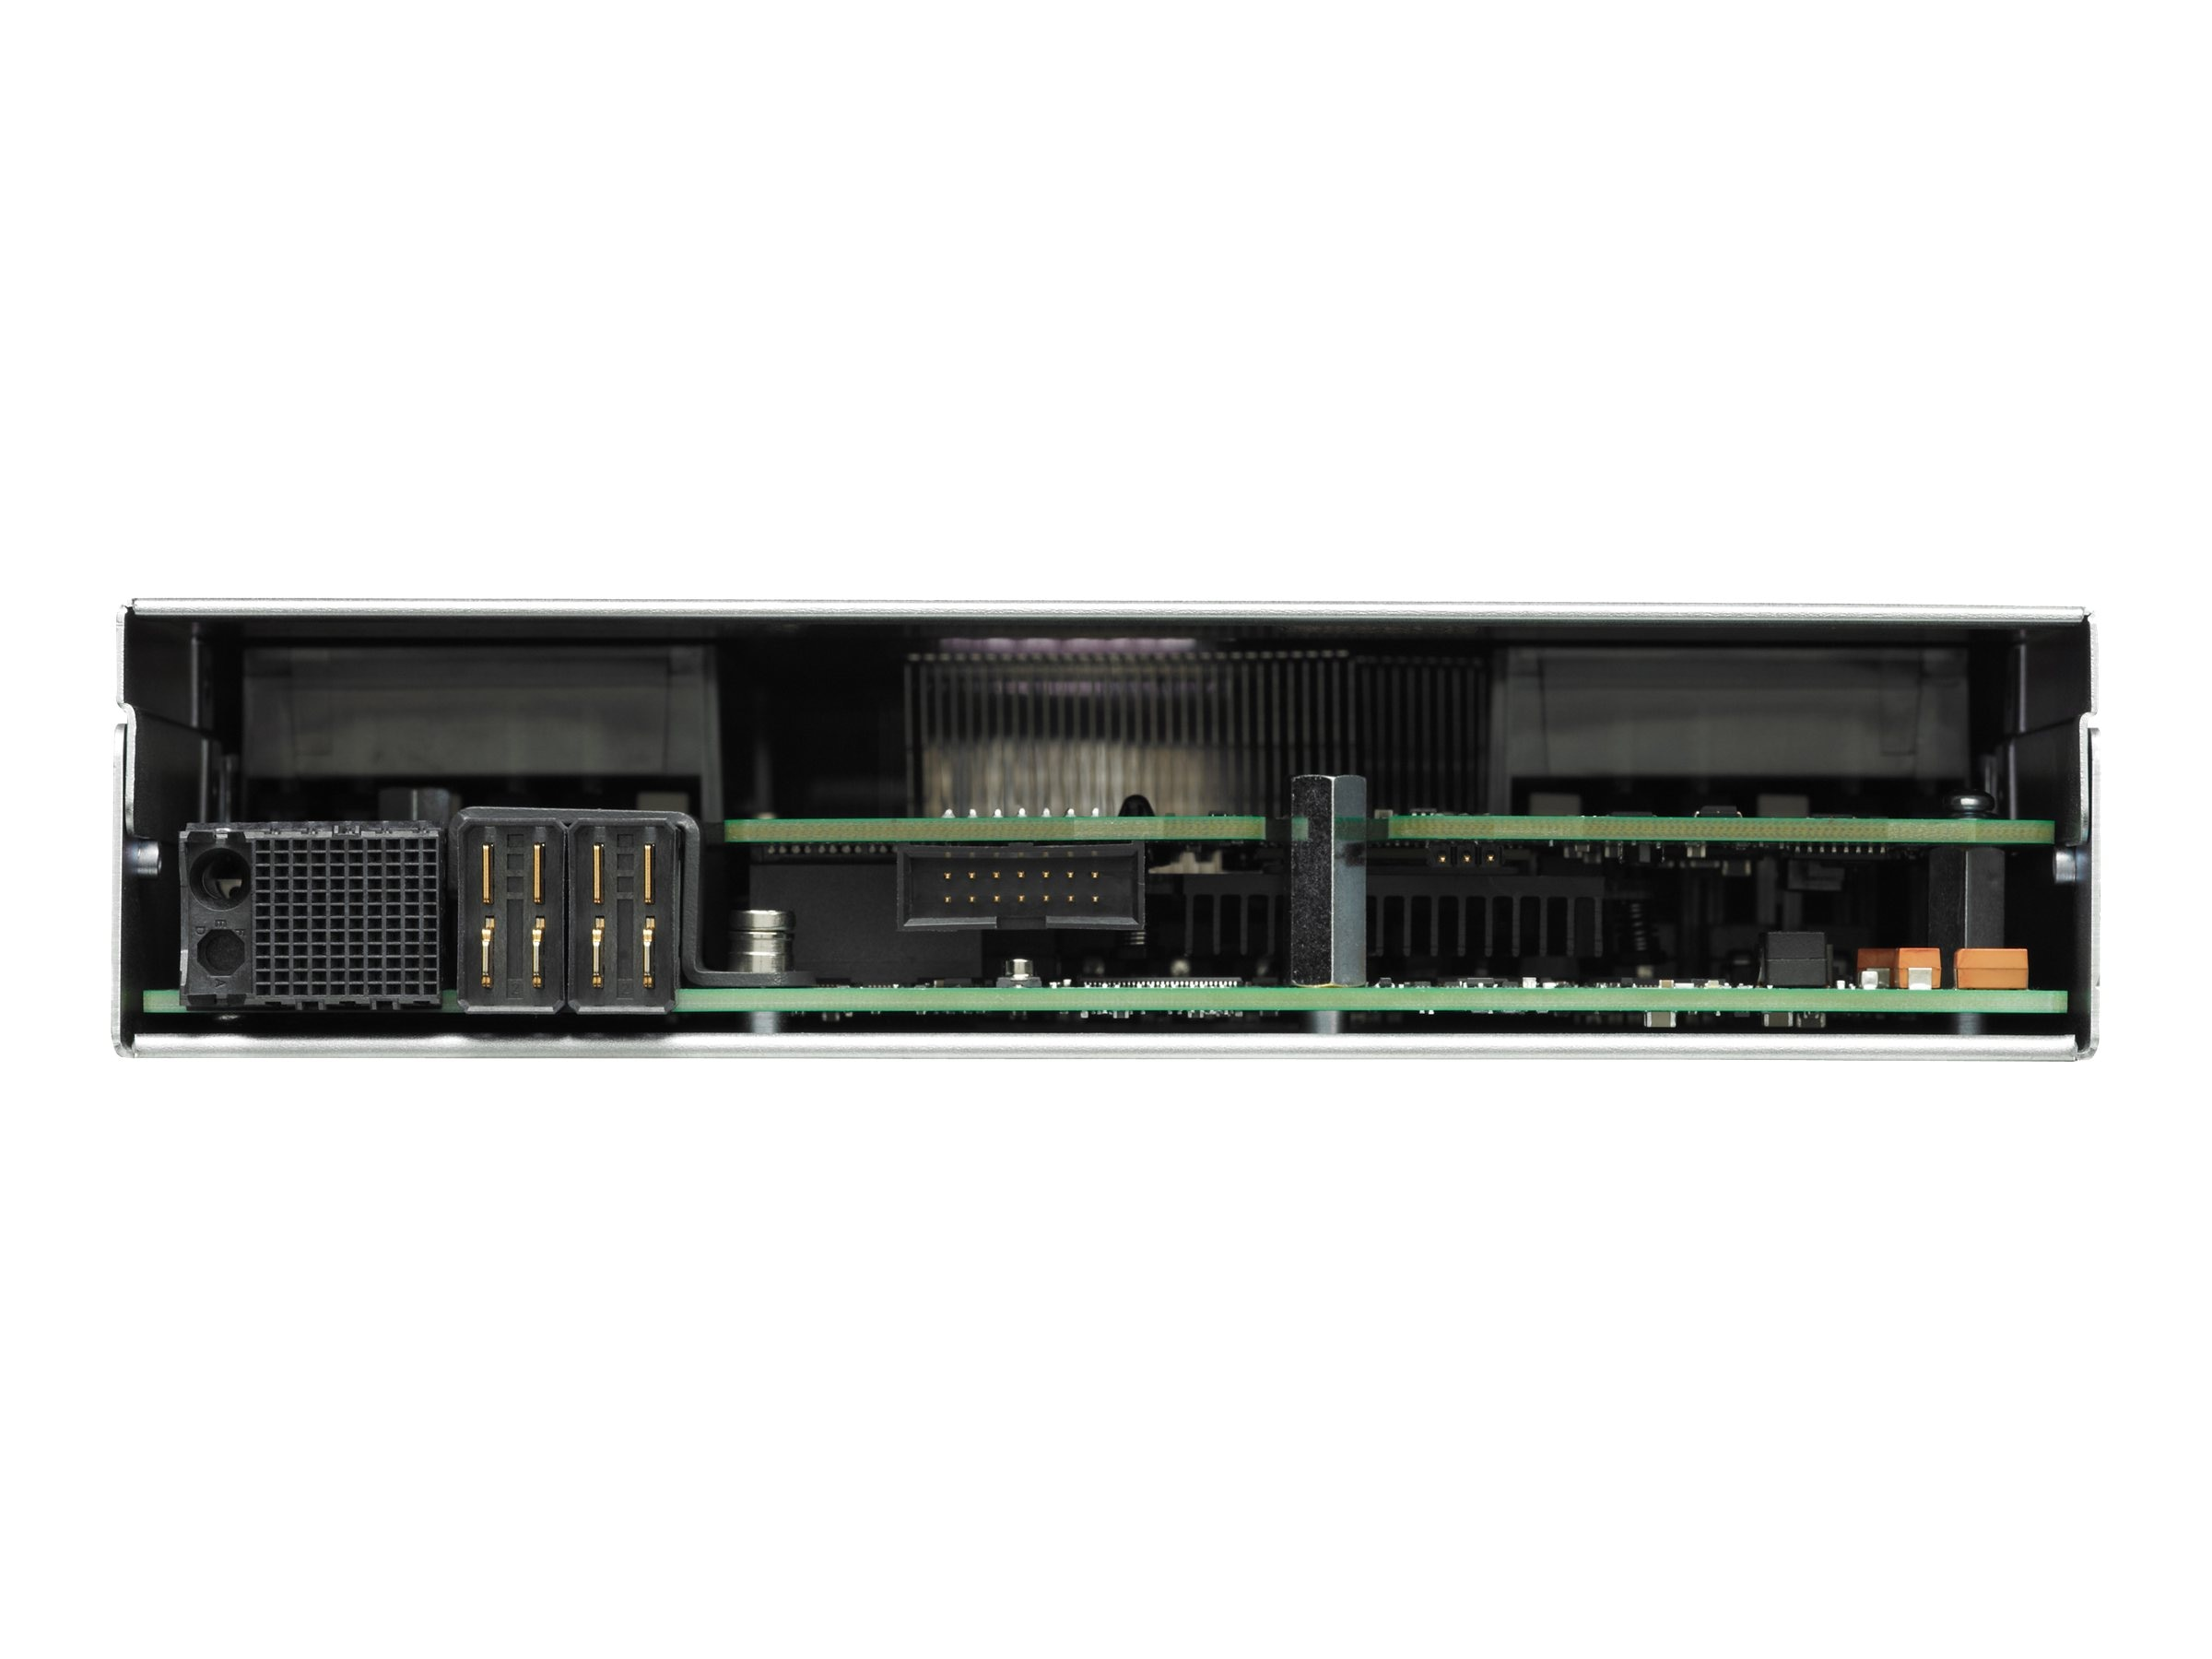 Cisco UCS B200 M3 Value SmartPlay Expansion (2x) Xeon E5-2640 v2 2.0GHz 128GB 2x2.5 Bays VIC1240, UCS-EZ7-B200-V